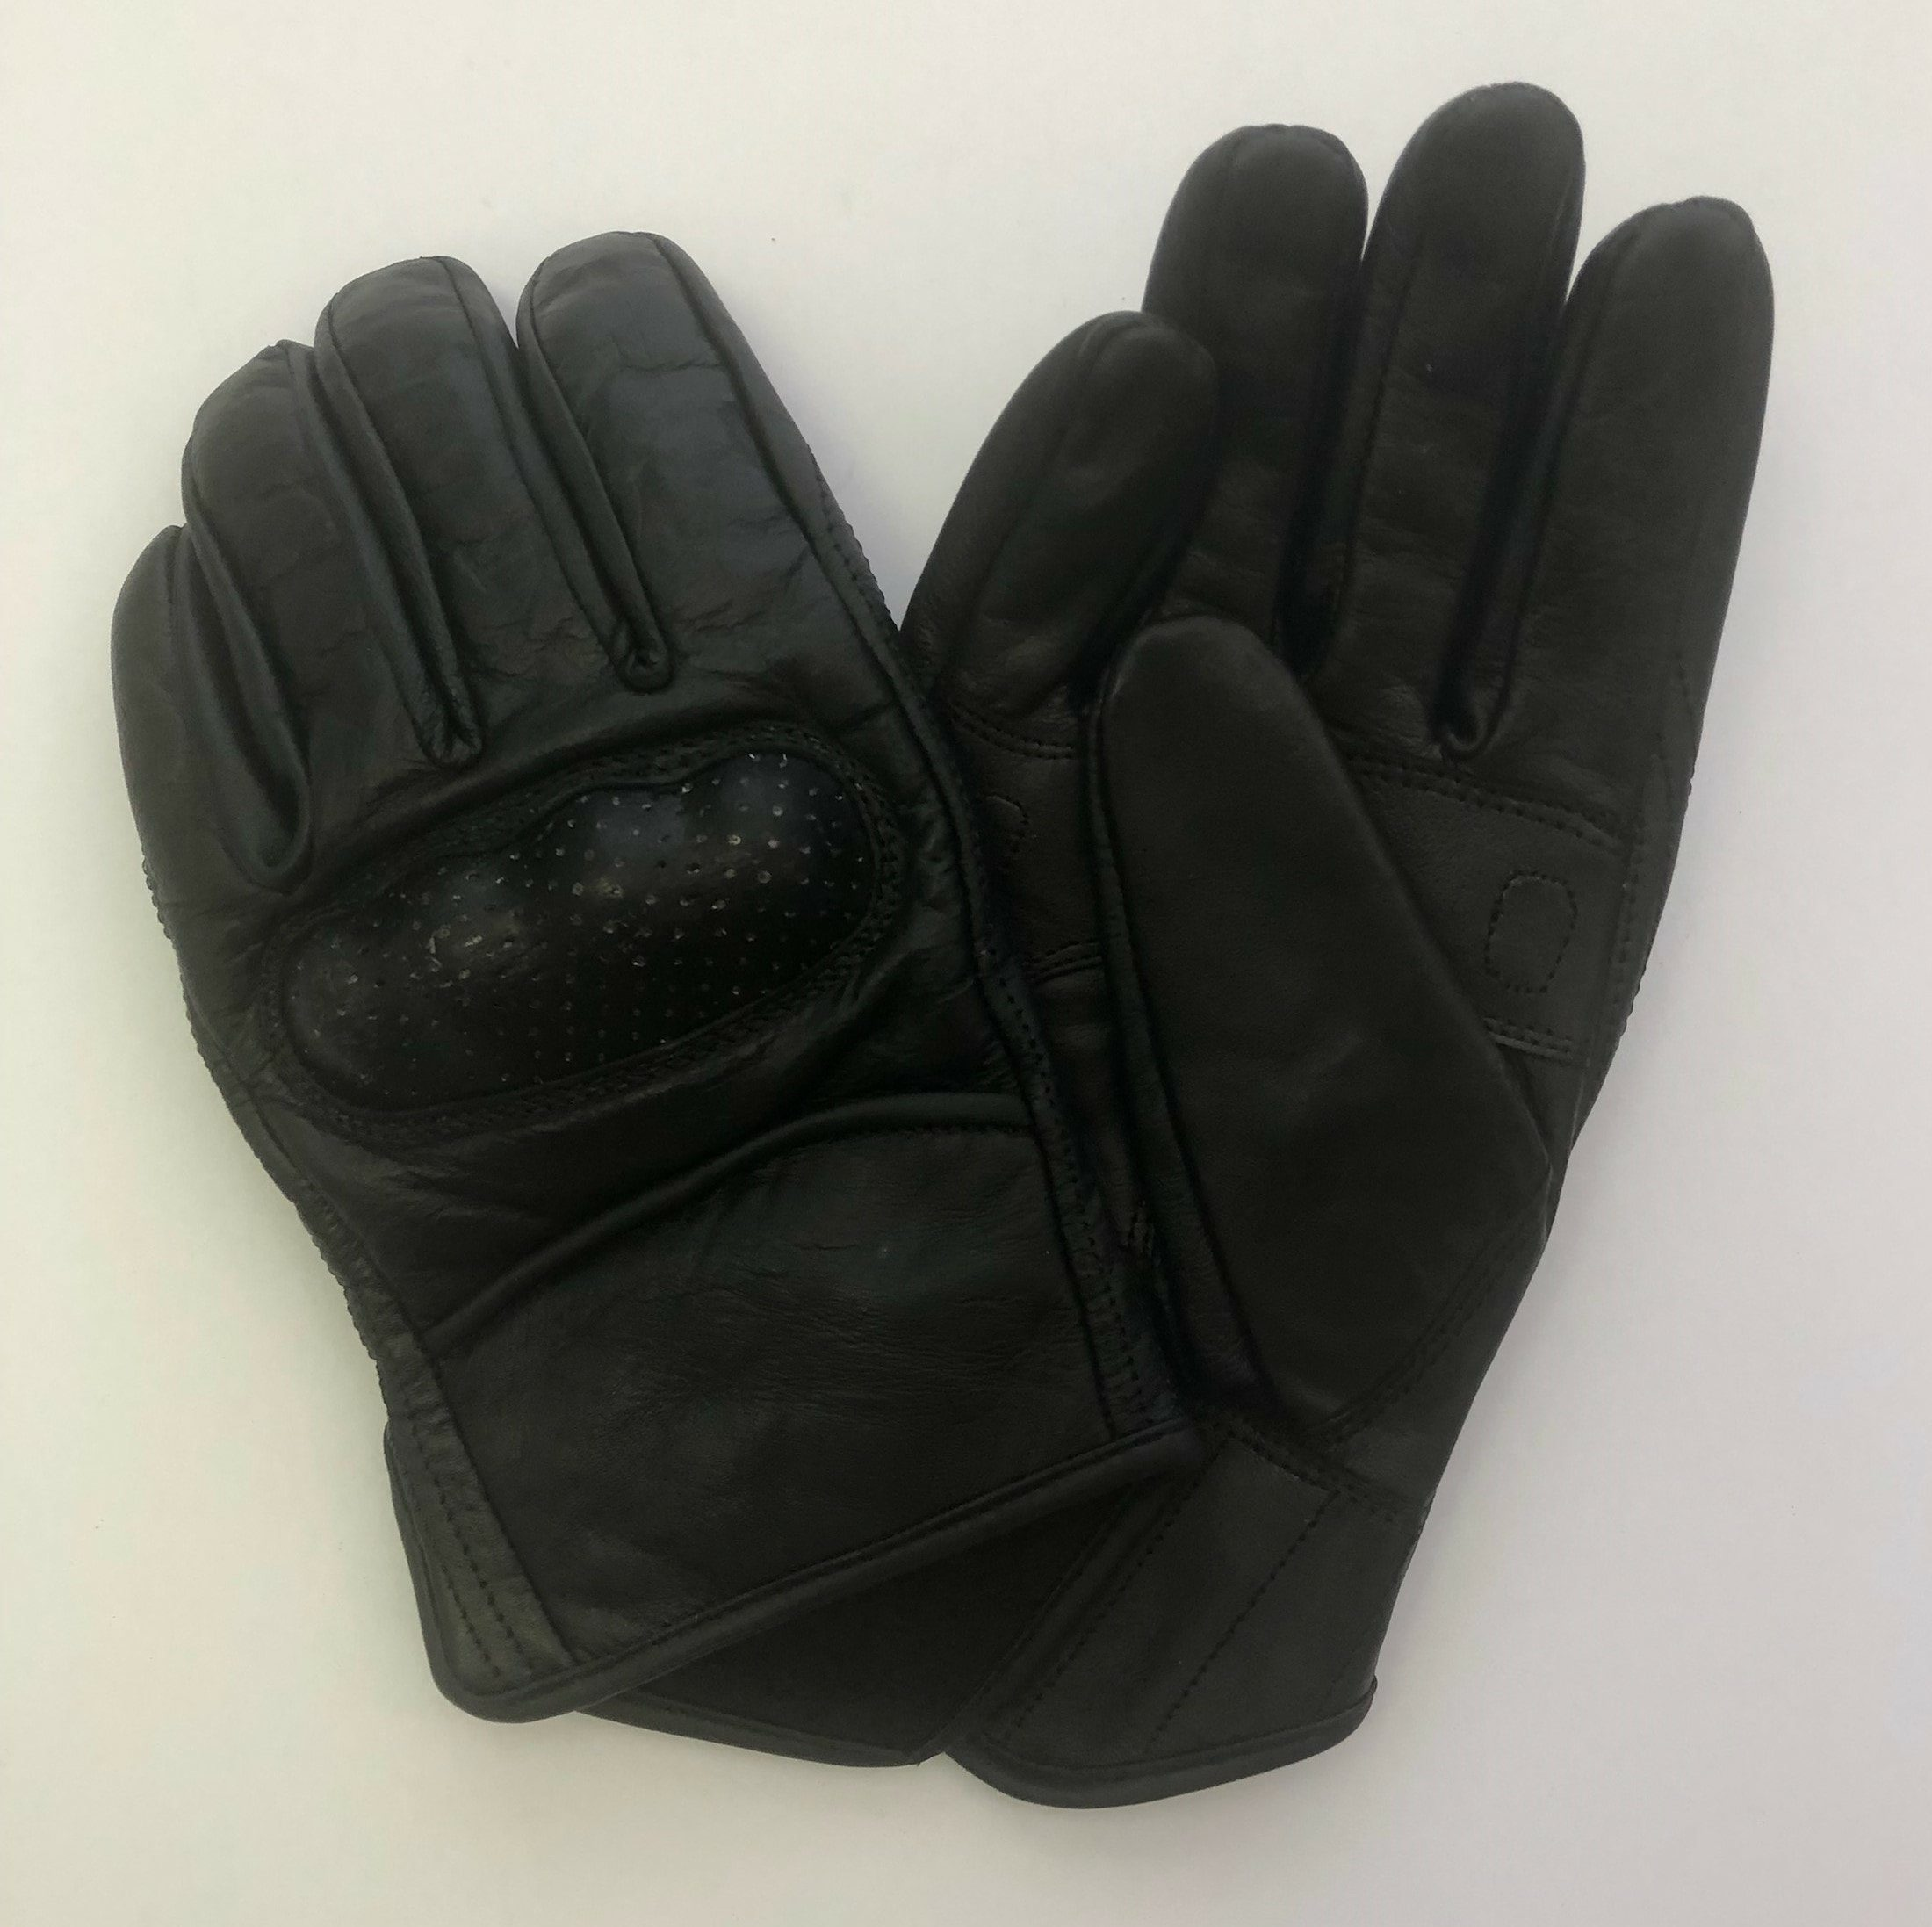 Leather Motorcycle Riding Gloves